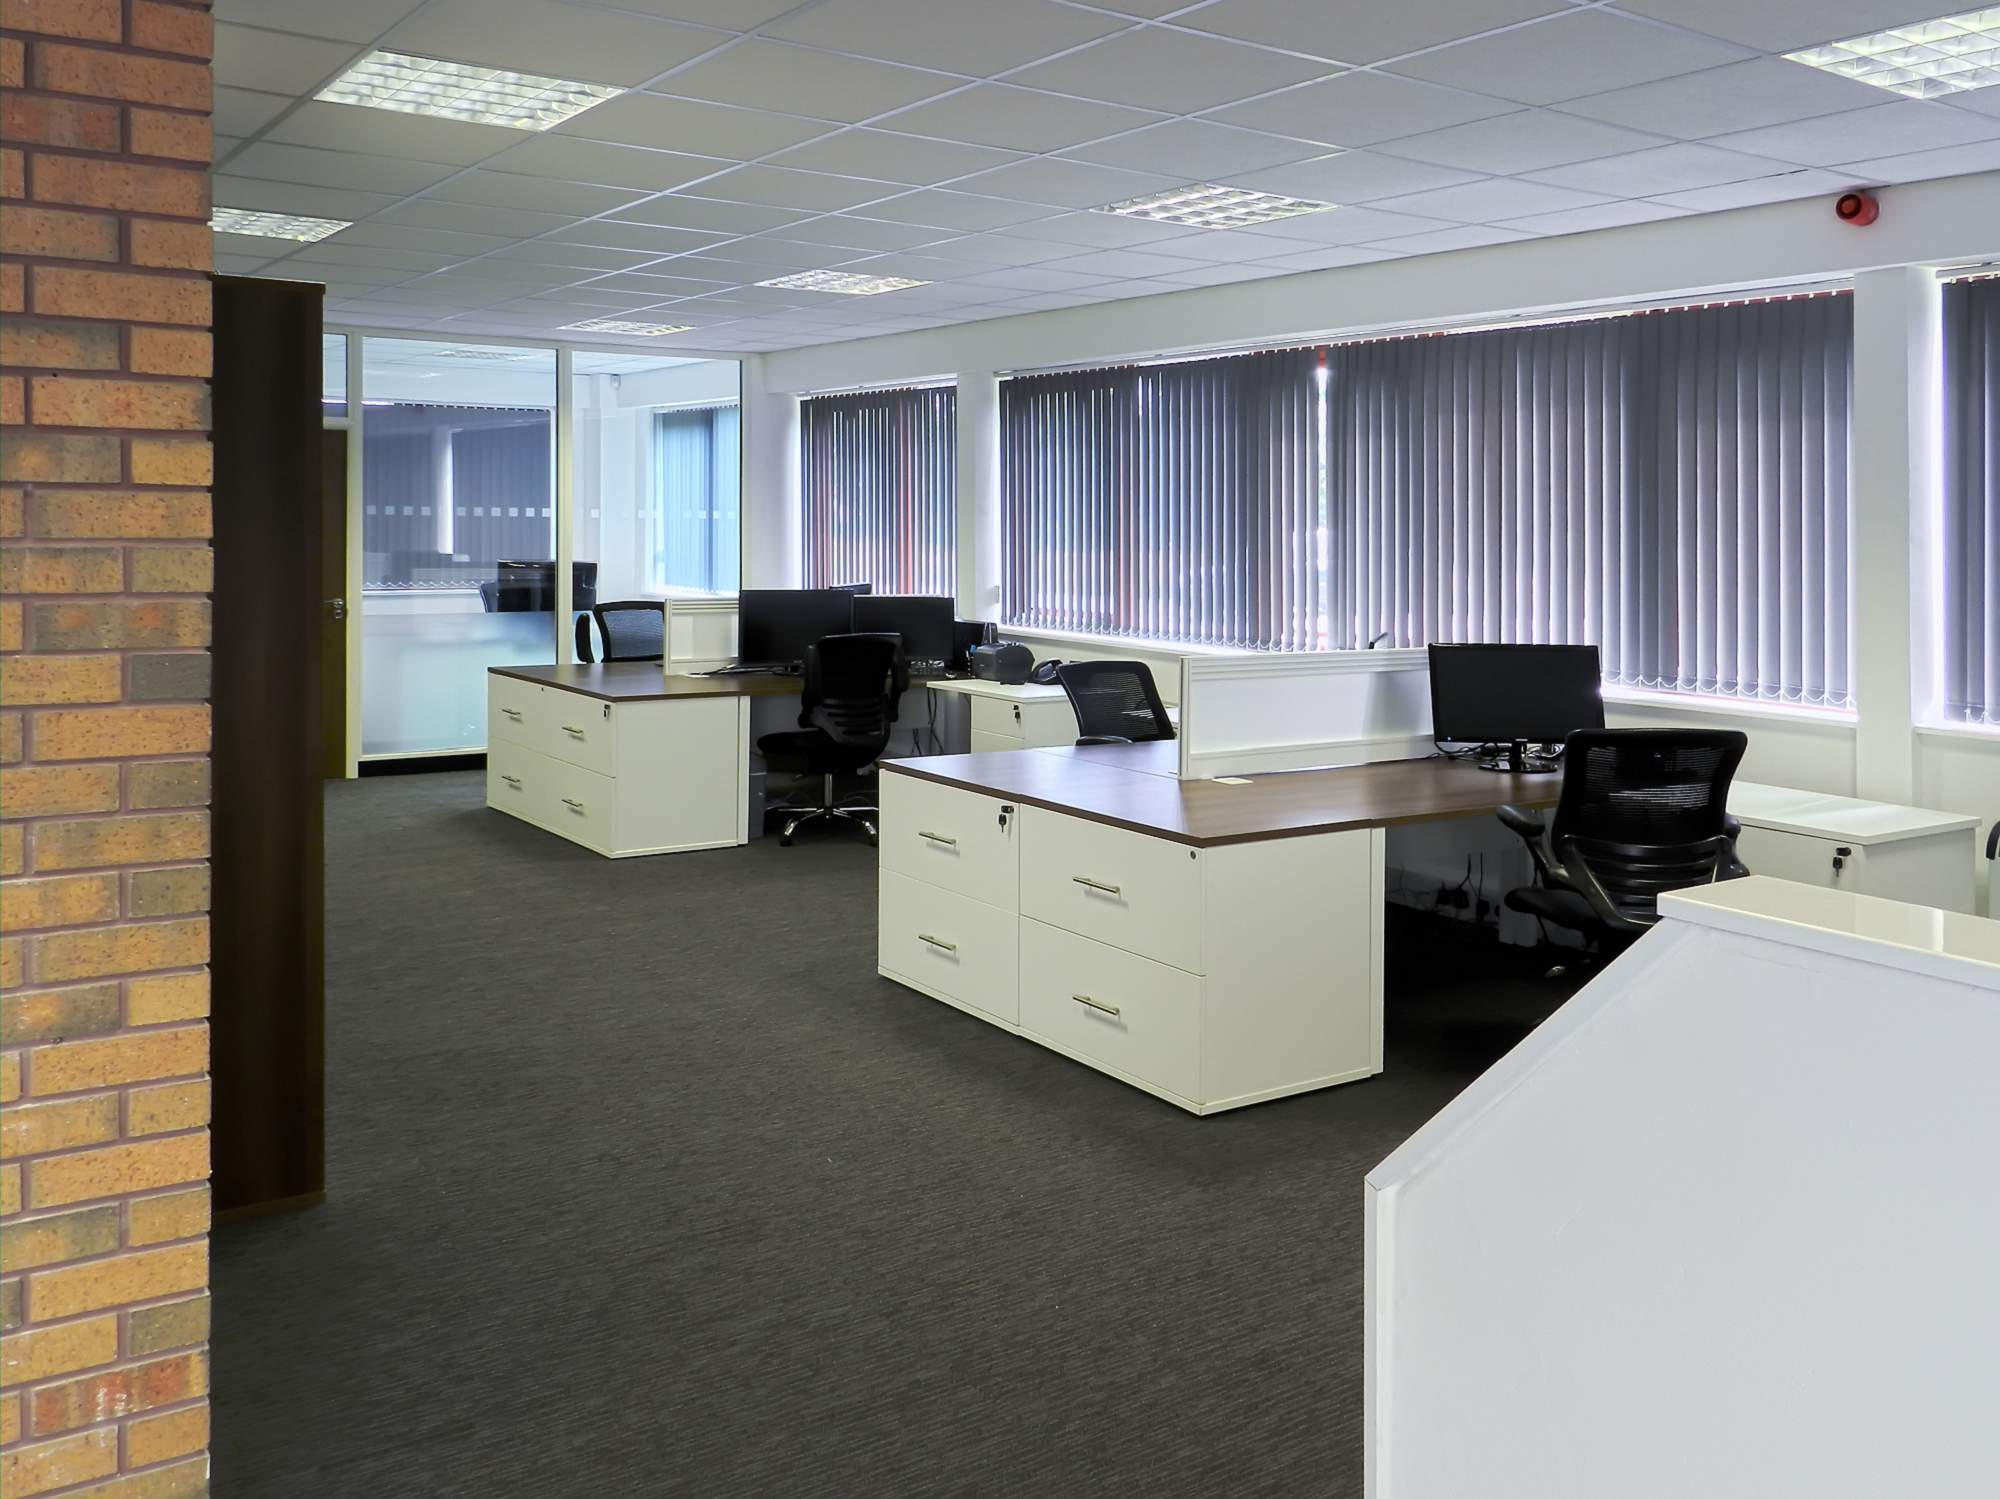 color scheme for office. Office Colour Design. 09 - Furniture Including The Chairs, Window Blinds And Carpet Color Scheme For